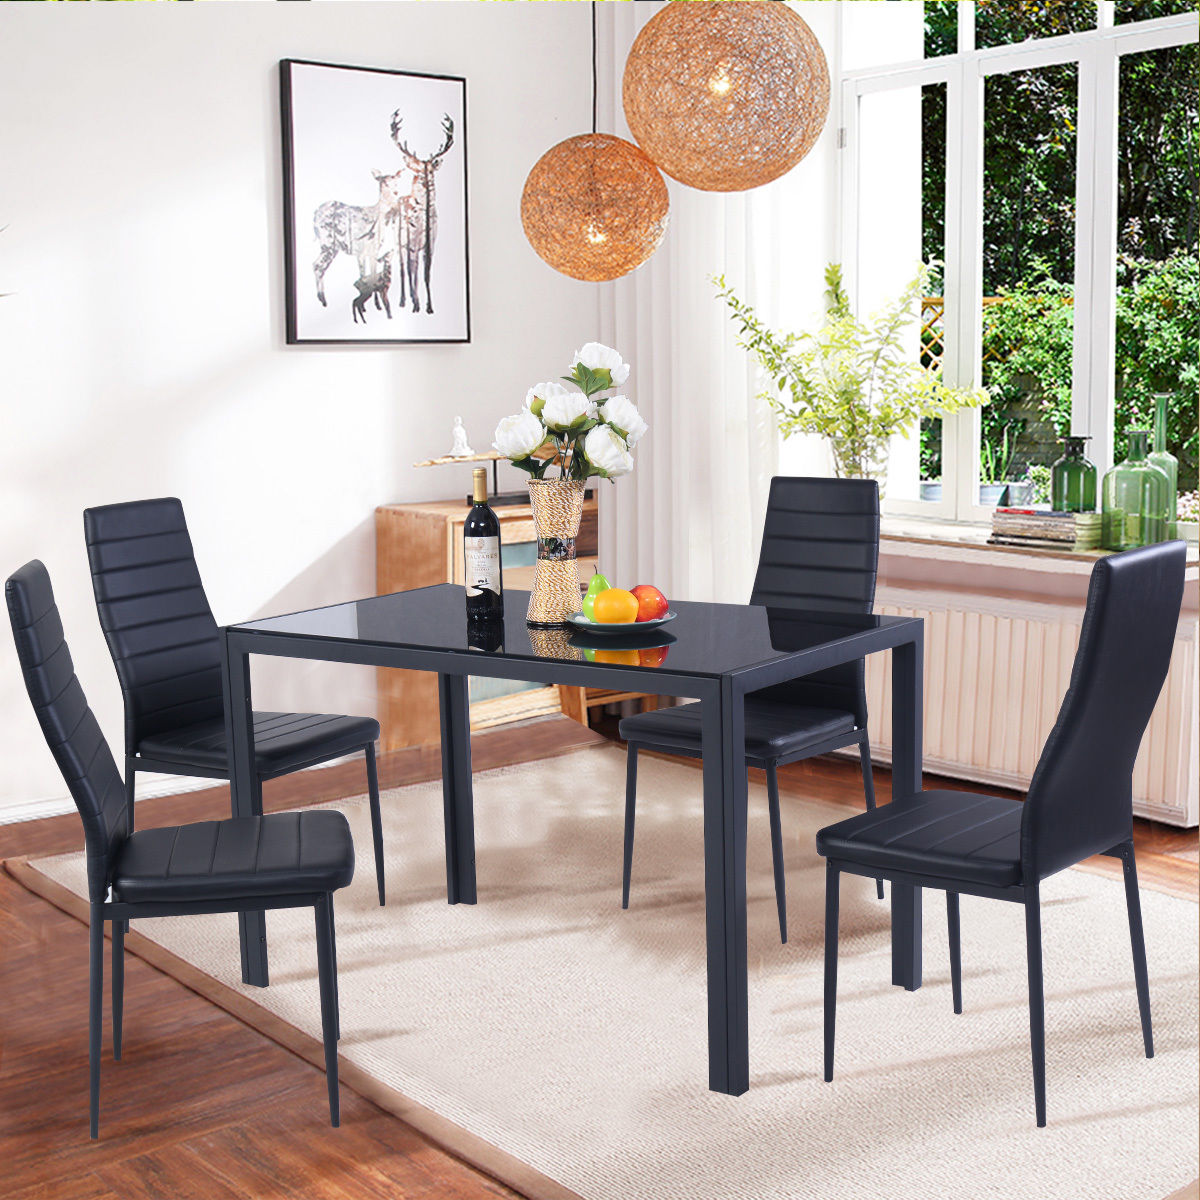 Beautiful Chairs Costway 5 Piece Kitchen Dining Set Glass Metal Table And 4 Chairs Breakfast Furniture